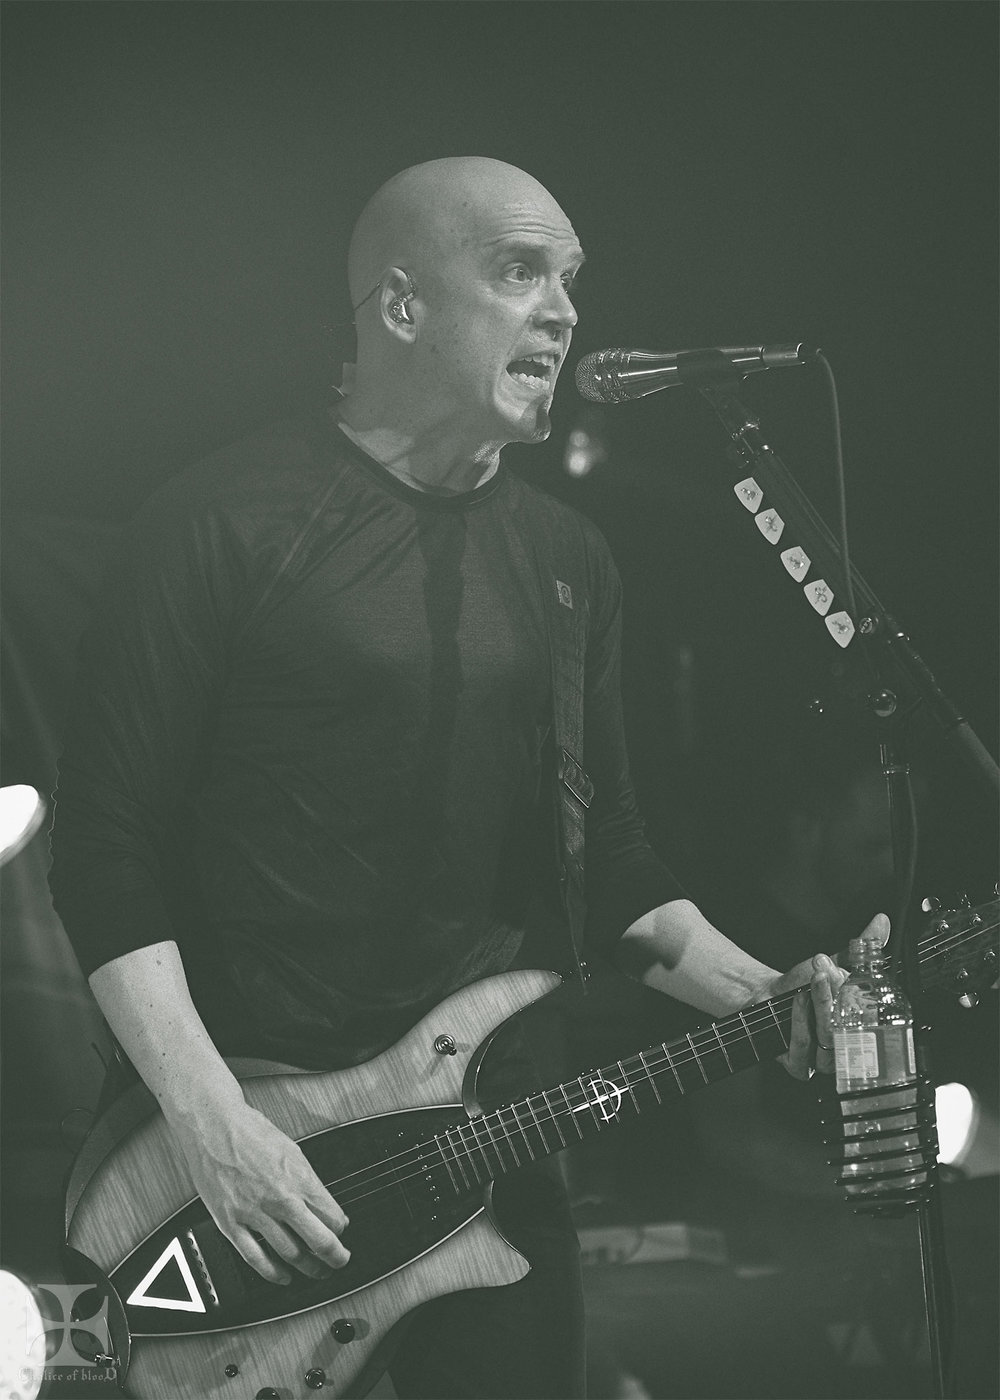 2017.05-Devin-Townsend---169-Exposure-watermarked.jpg